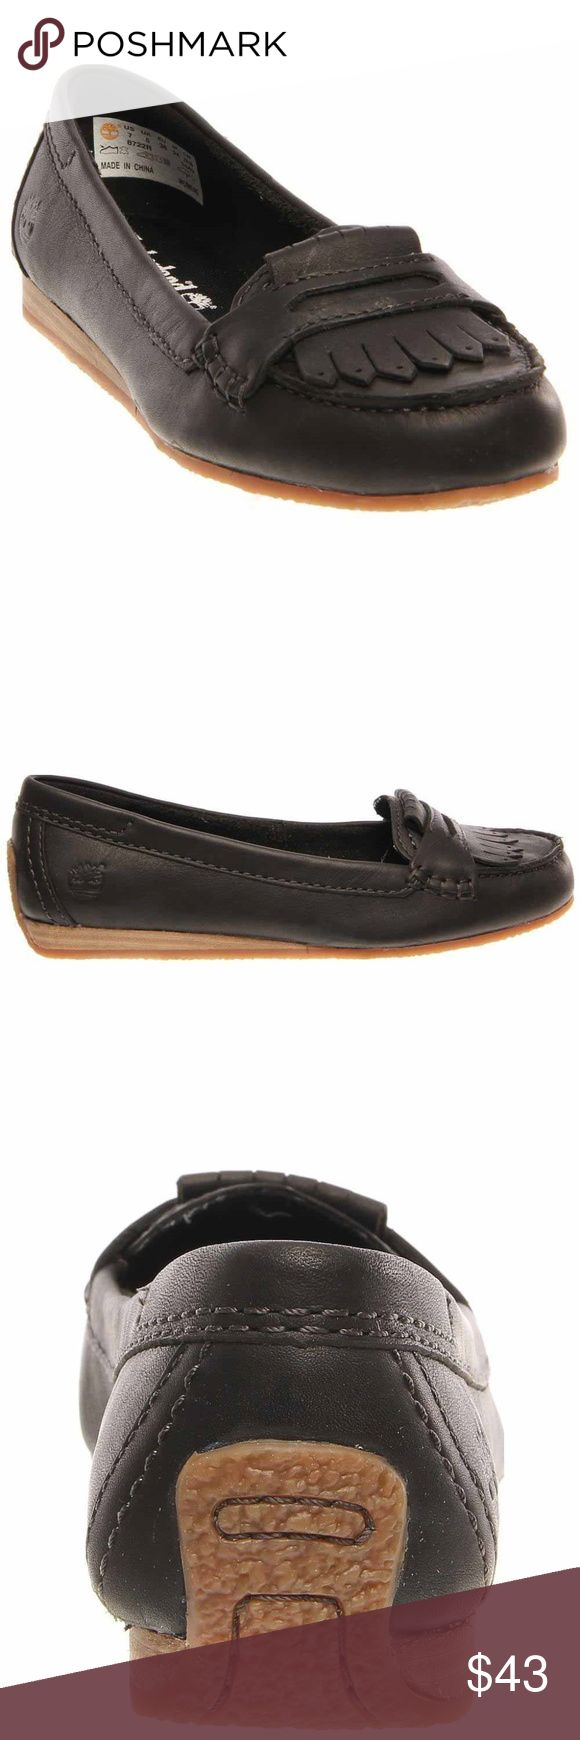 Timberland Earthkeepers Caska Kiltie Moccasins Slip into casual comfort when you wear Timberland Earthkeepers Caska Kiltie Moccasins. These genuine leather slip-on shoes are hand-crafted with tonal stitching and cut-out tassel detailing over the toe. Timberland Shoes Flats & Loafers